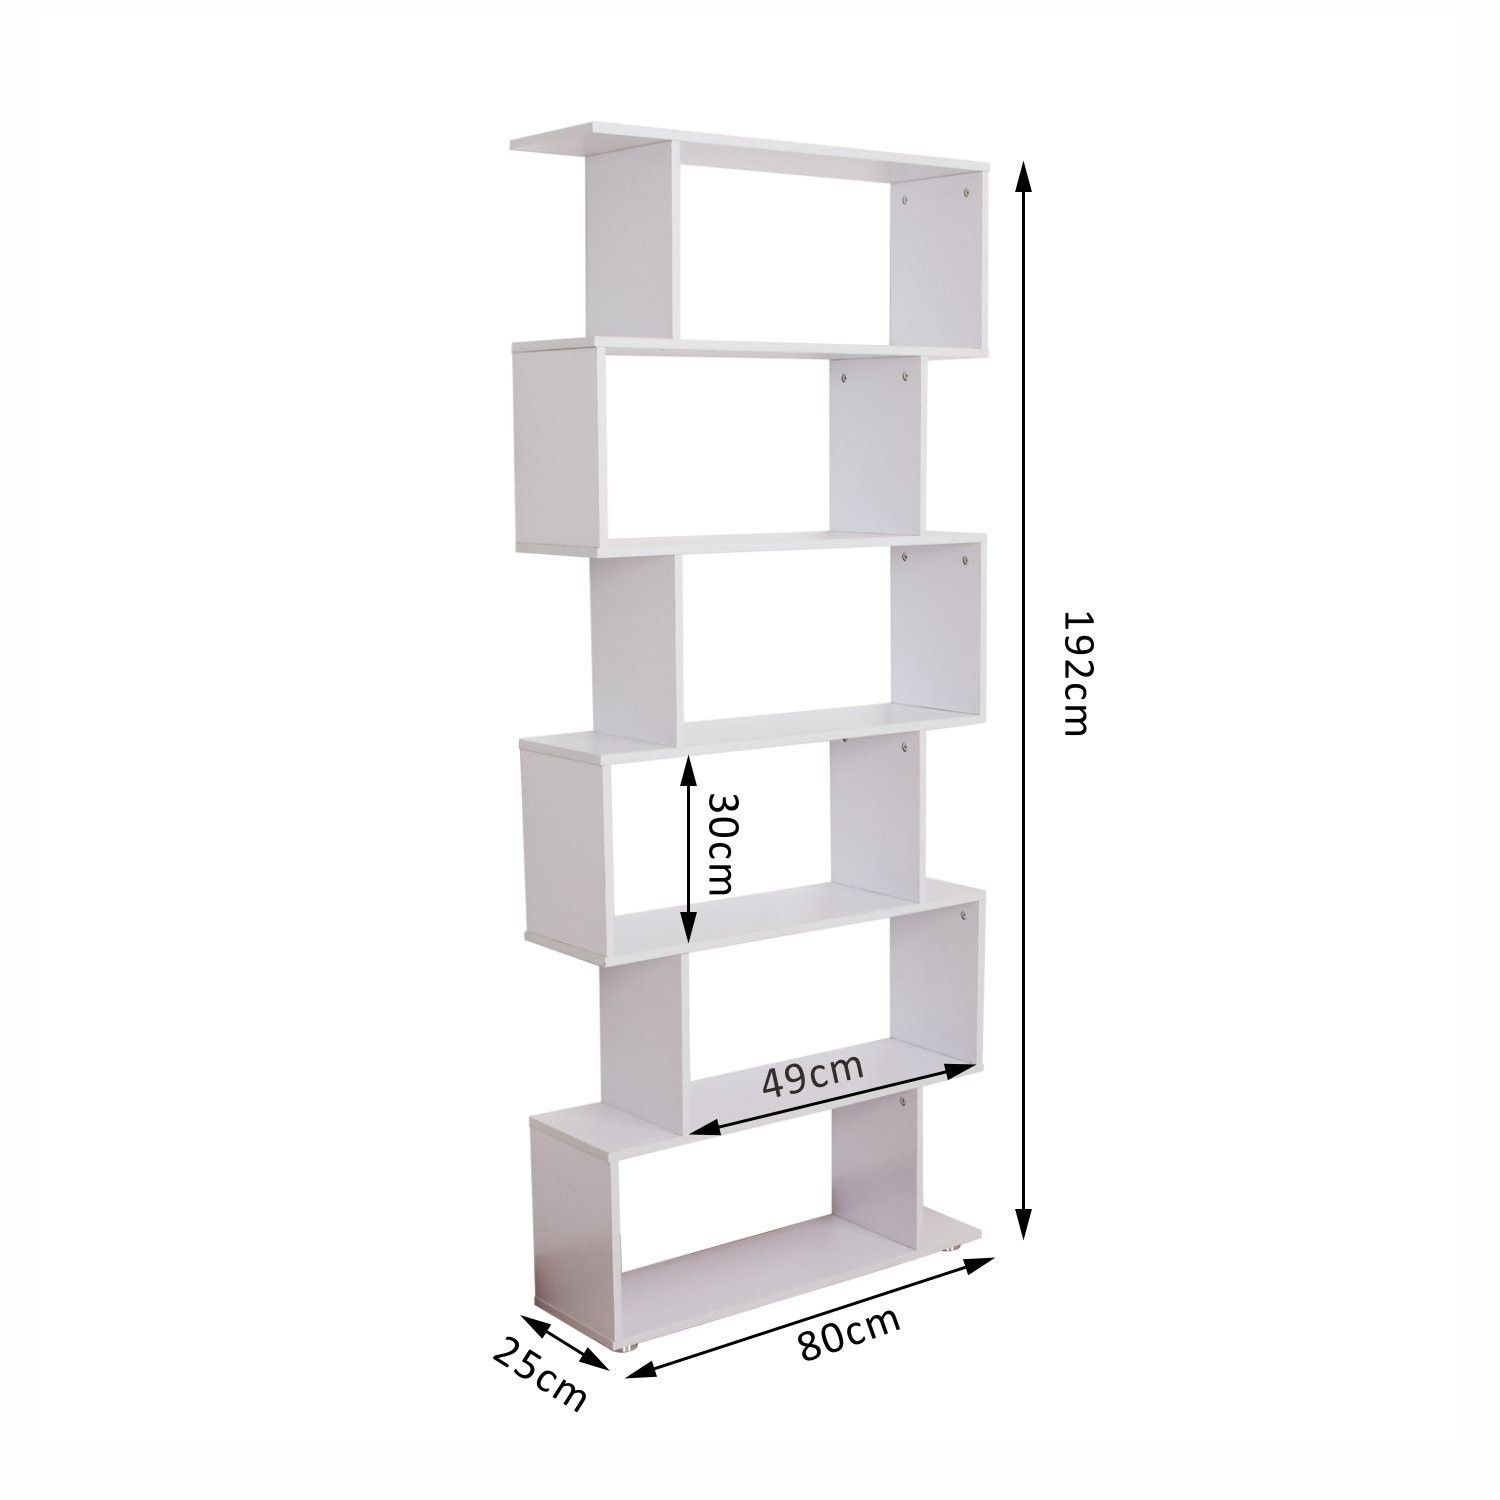 Wooden S Shape Storage Bookcase White – Ideal Home Show Shop | Home ...